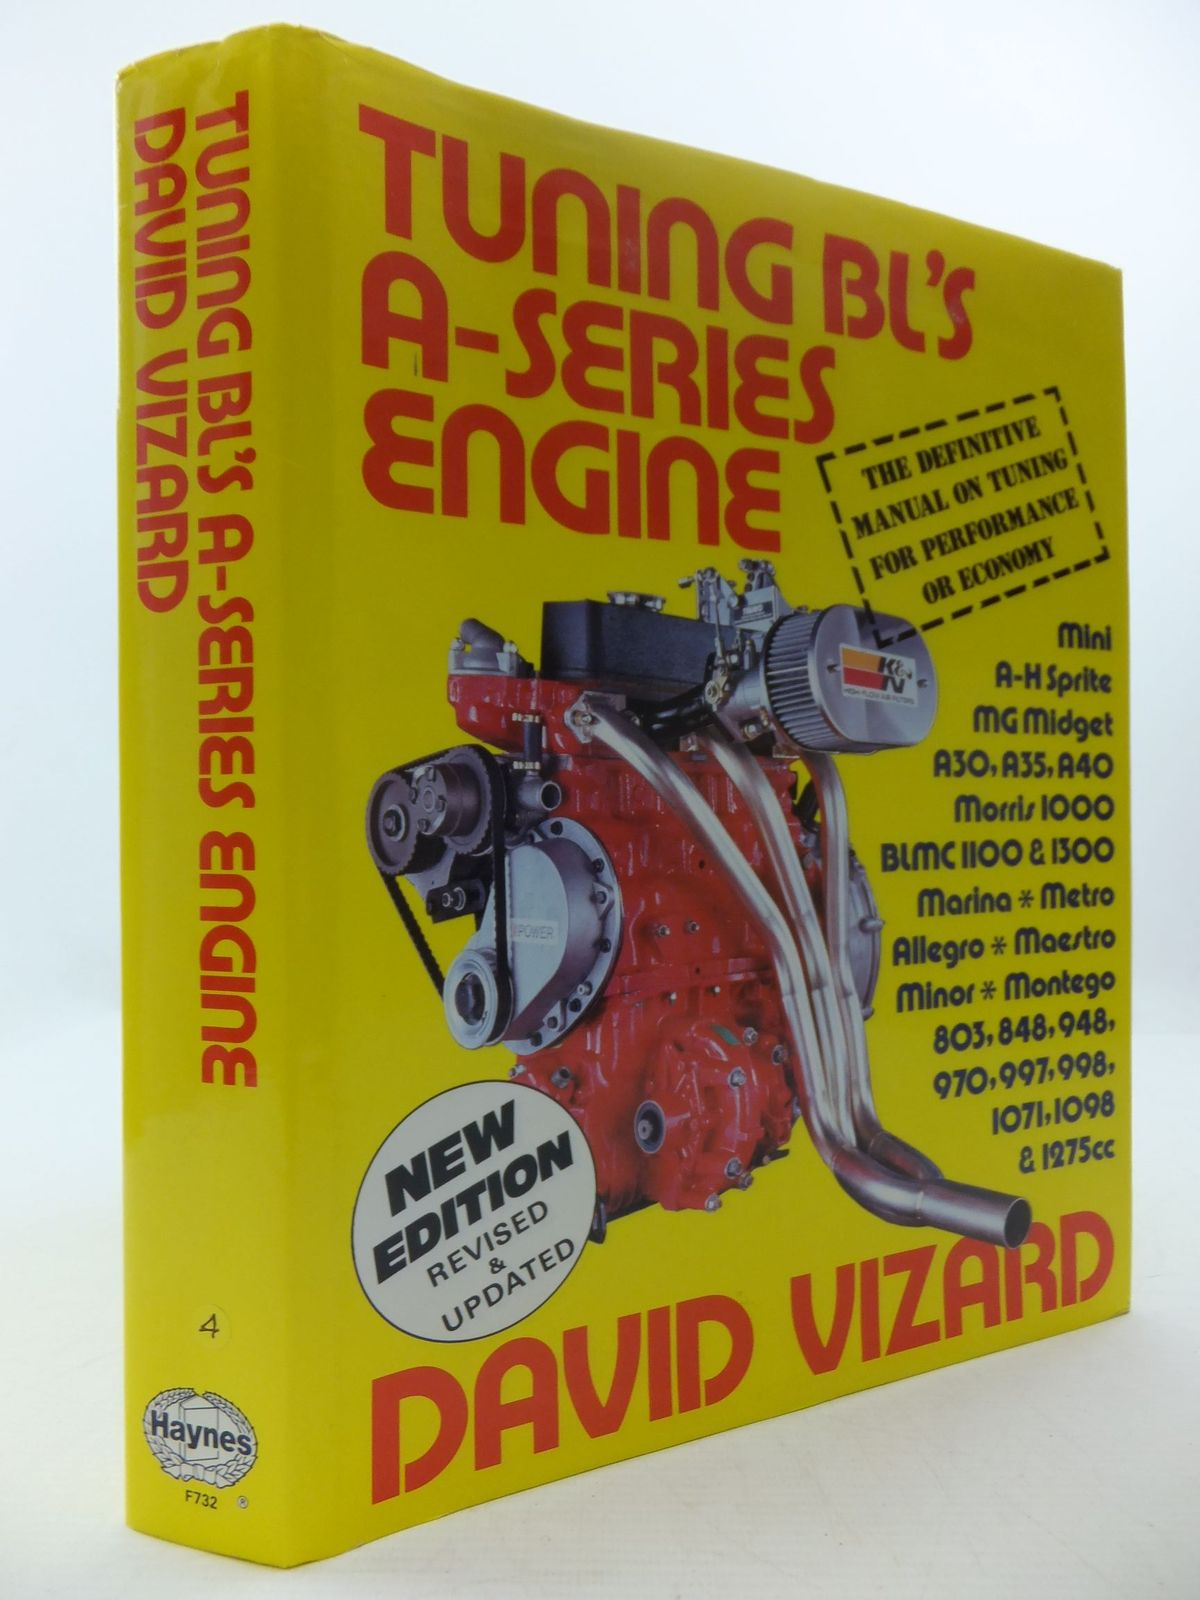 David vizard tuning the a series engine pdf